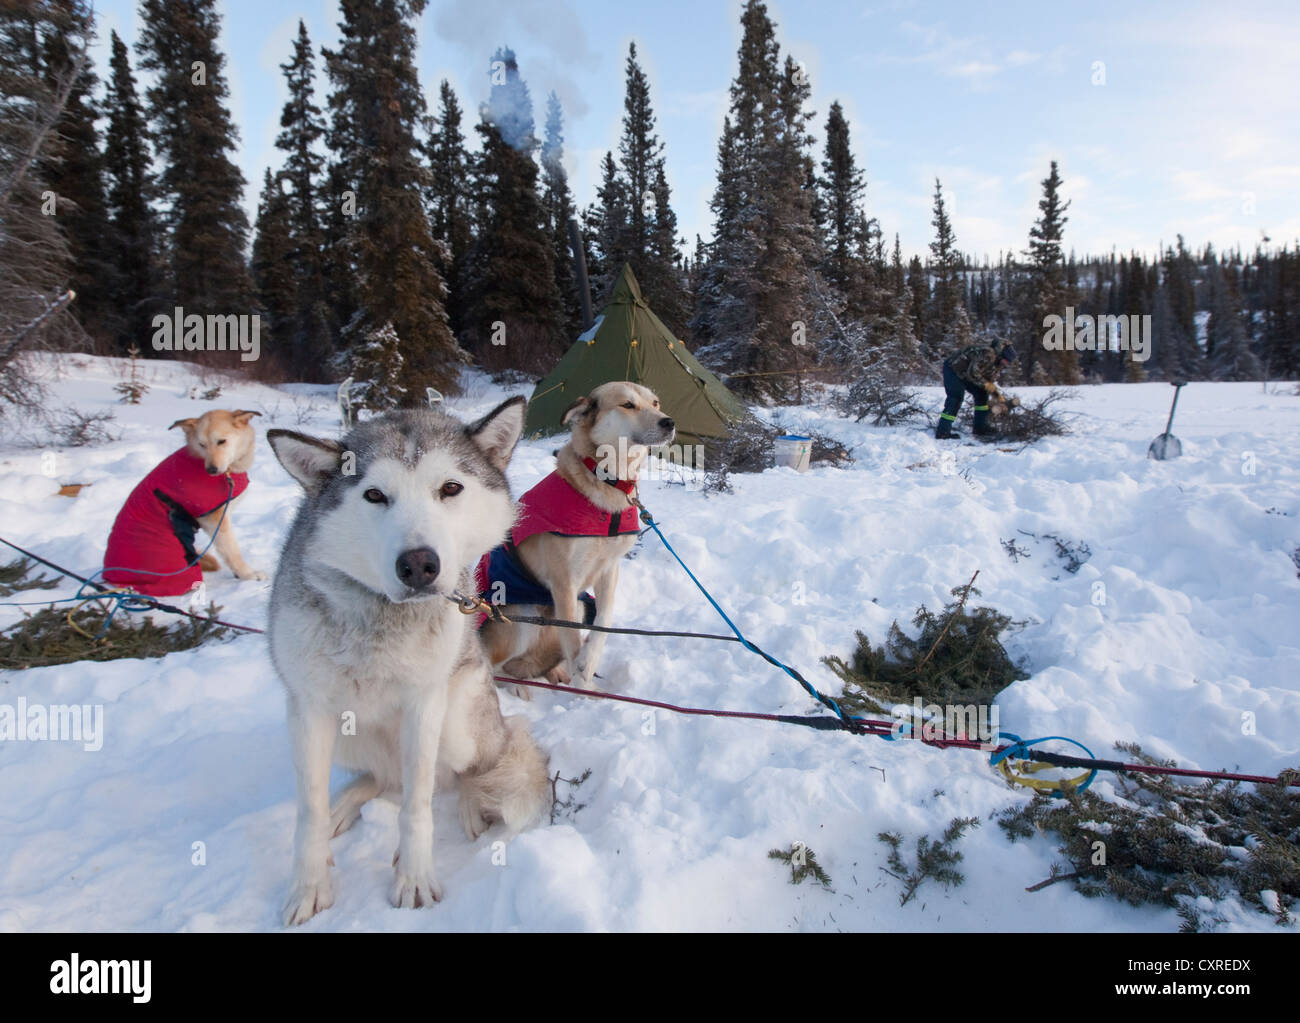 Sled dogs, Siberian Huskies, resting in snow, stake out cable, camp, teepee behind, Yukon Territory, Canada - Stock Image